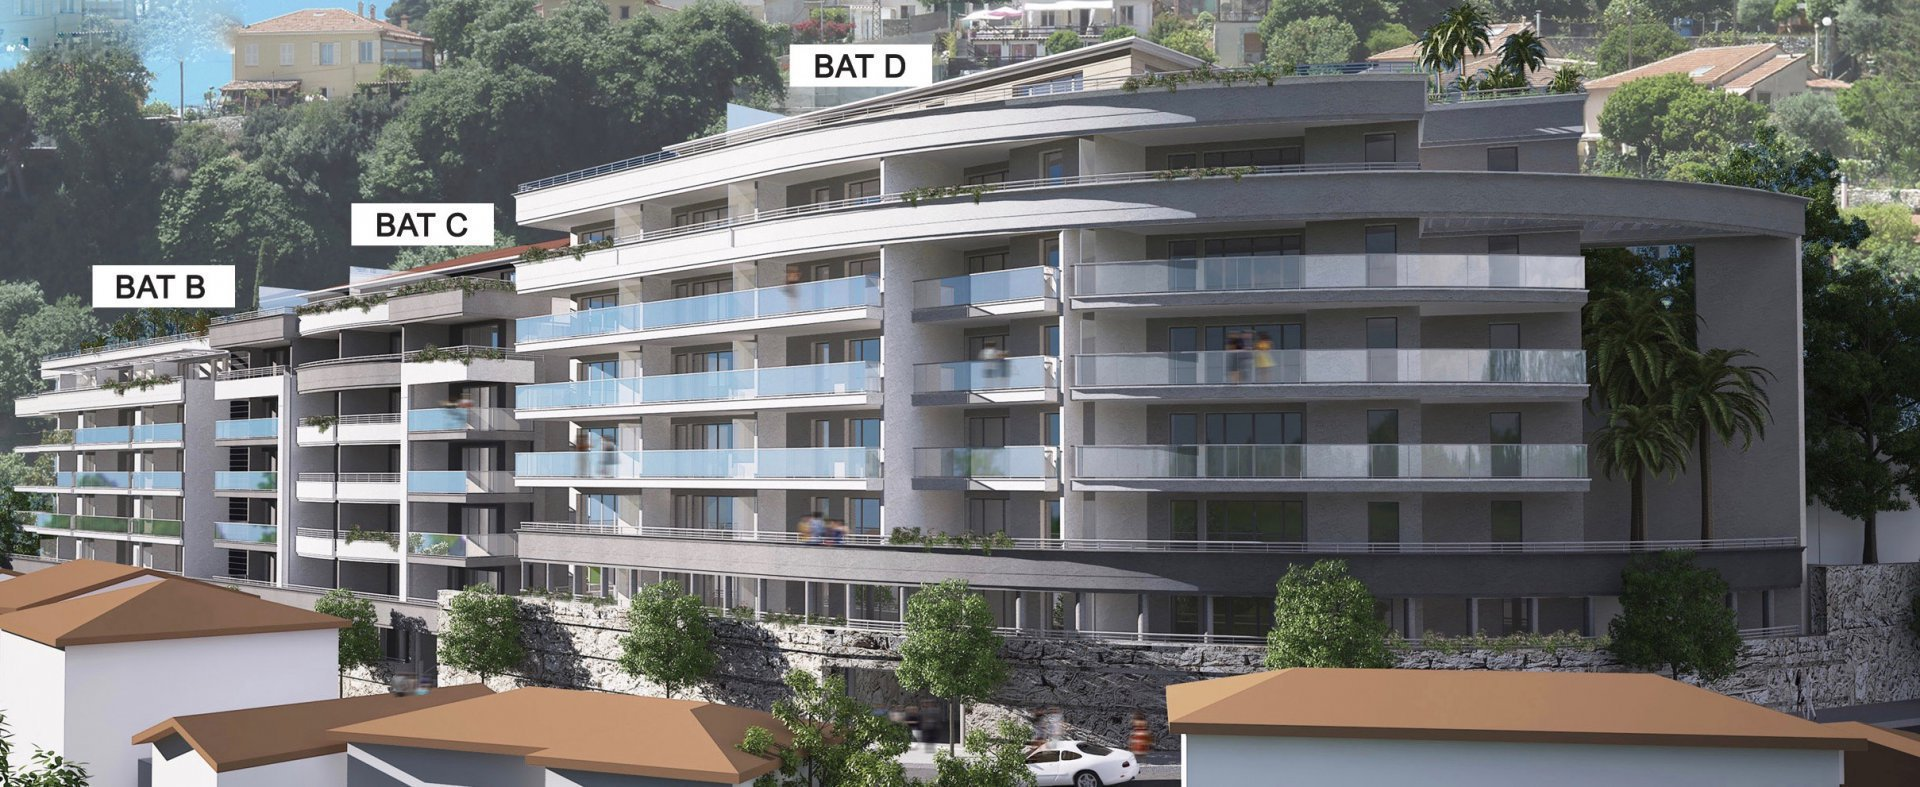 BEAUSOLEIL - French Riviera - Penthouse with sea view and large terrace